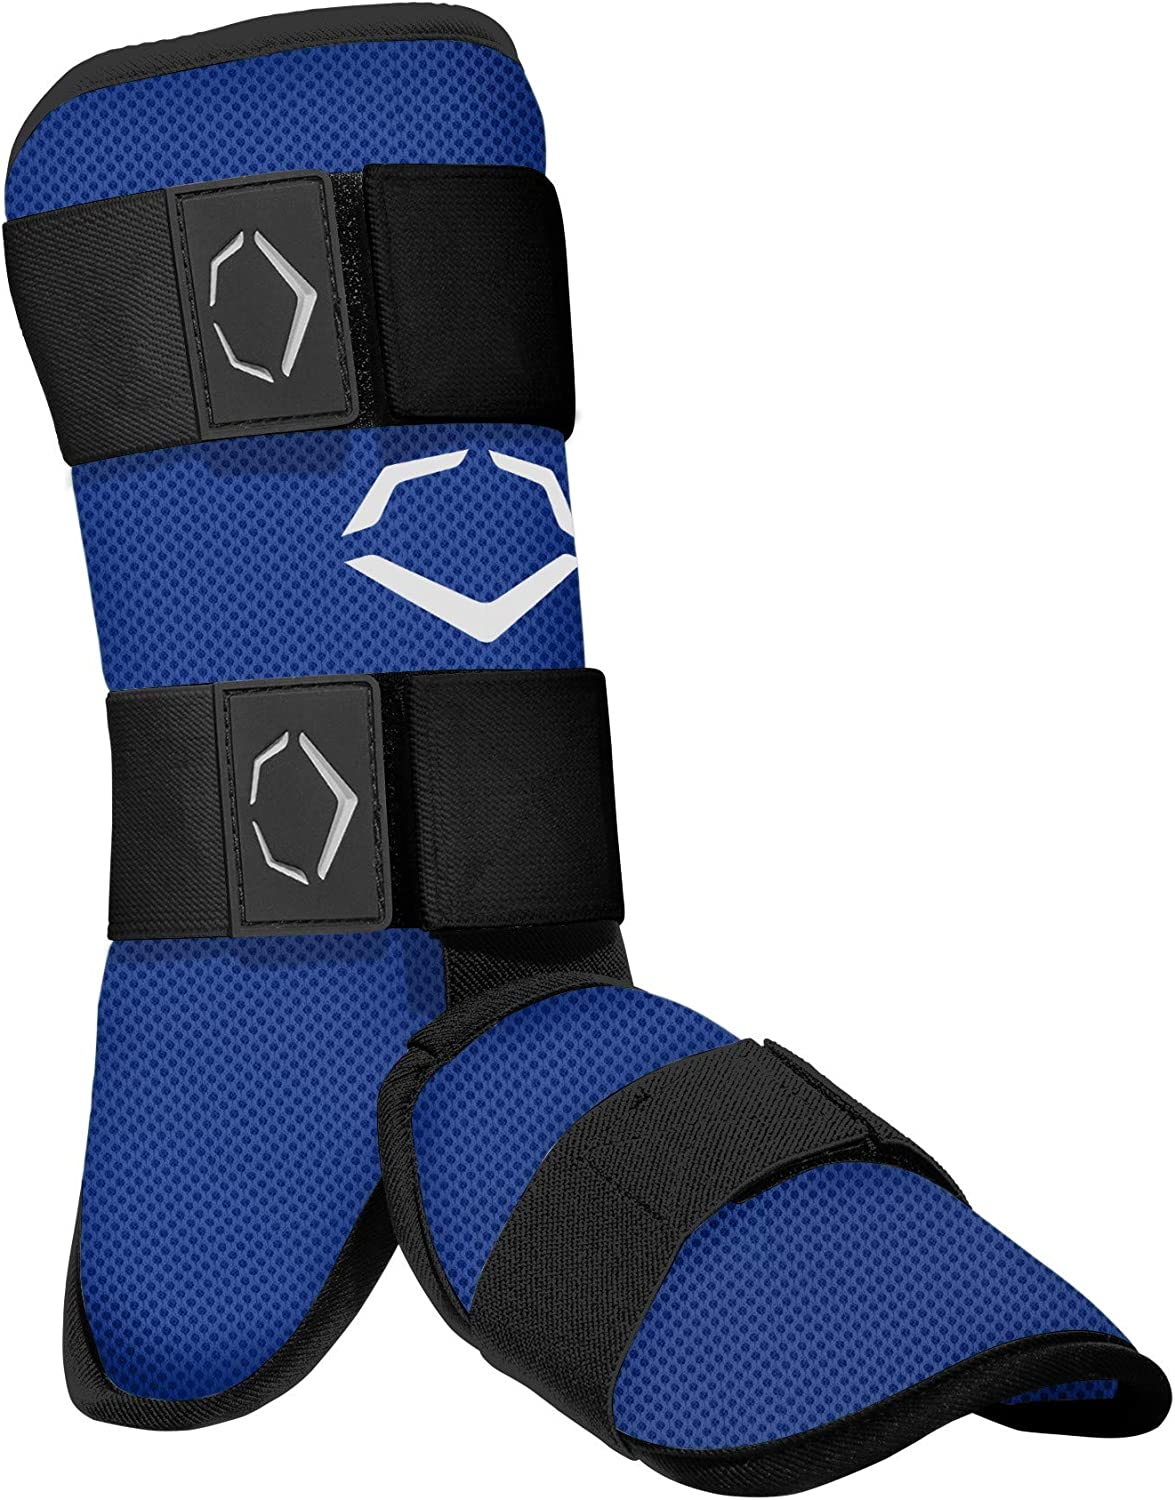 EvoShield SRZ-1 Challenge the lowest price of Japan ☆ Special Campaign Batter's Series Guard Leg